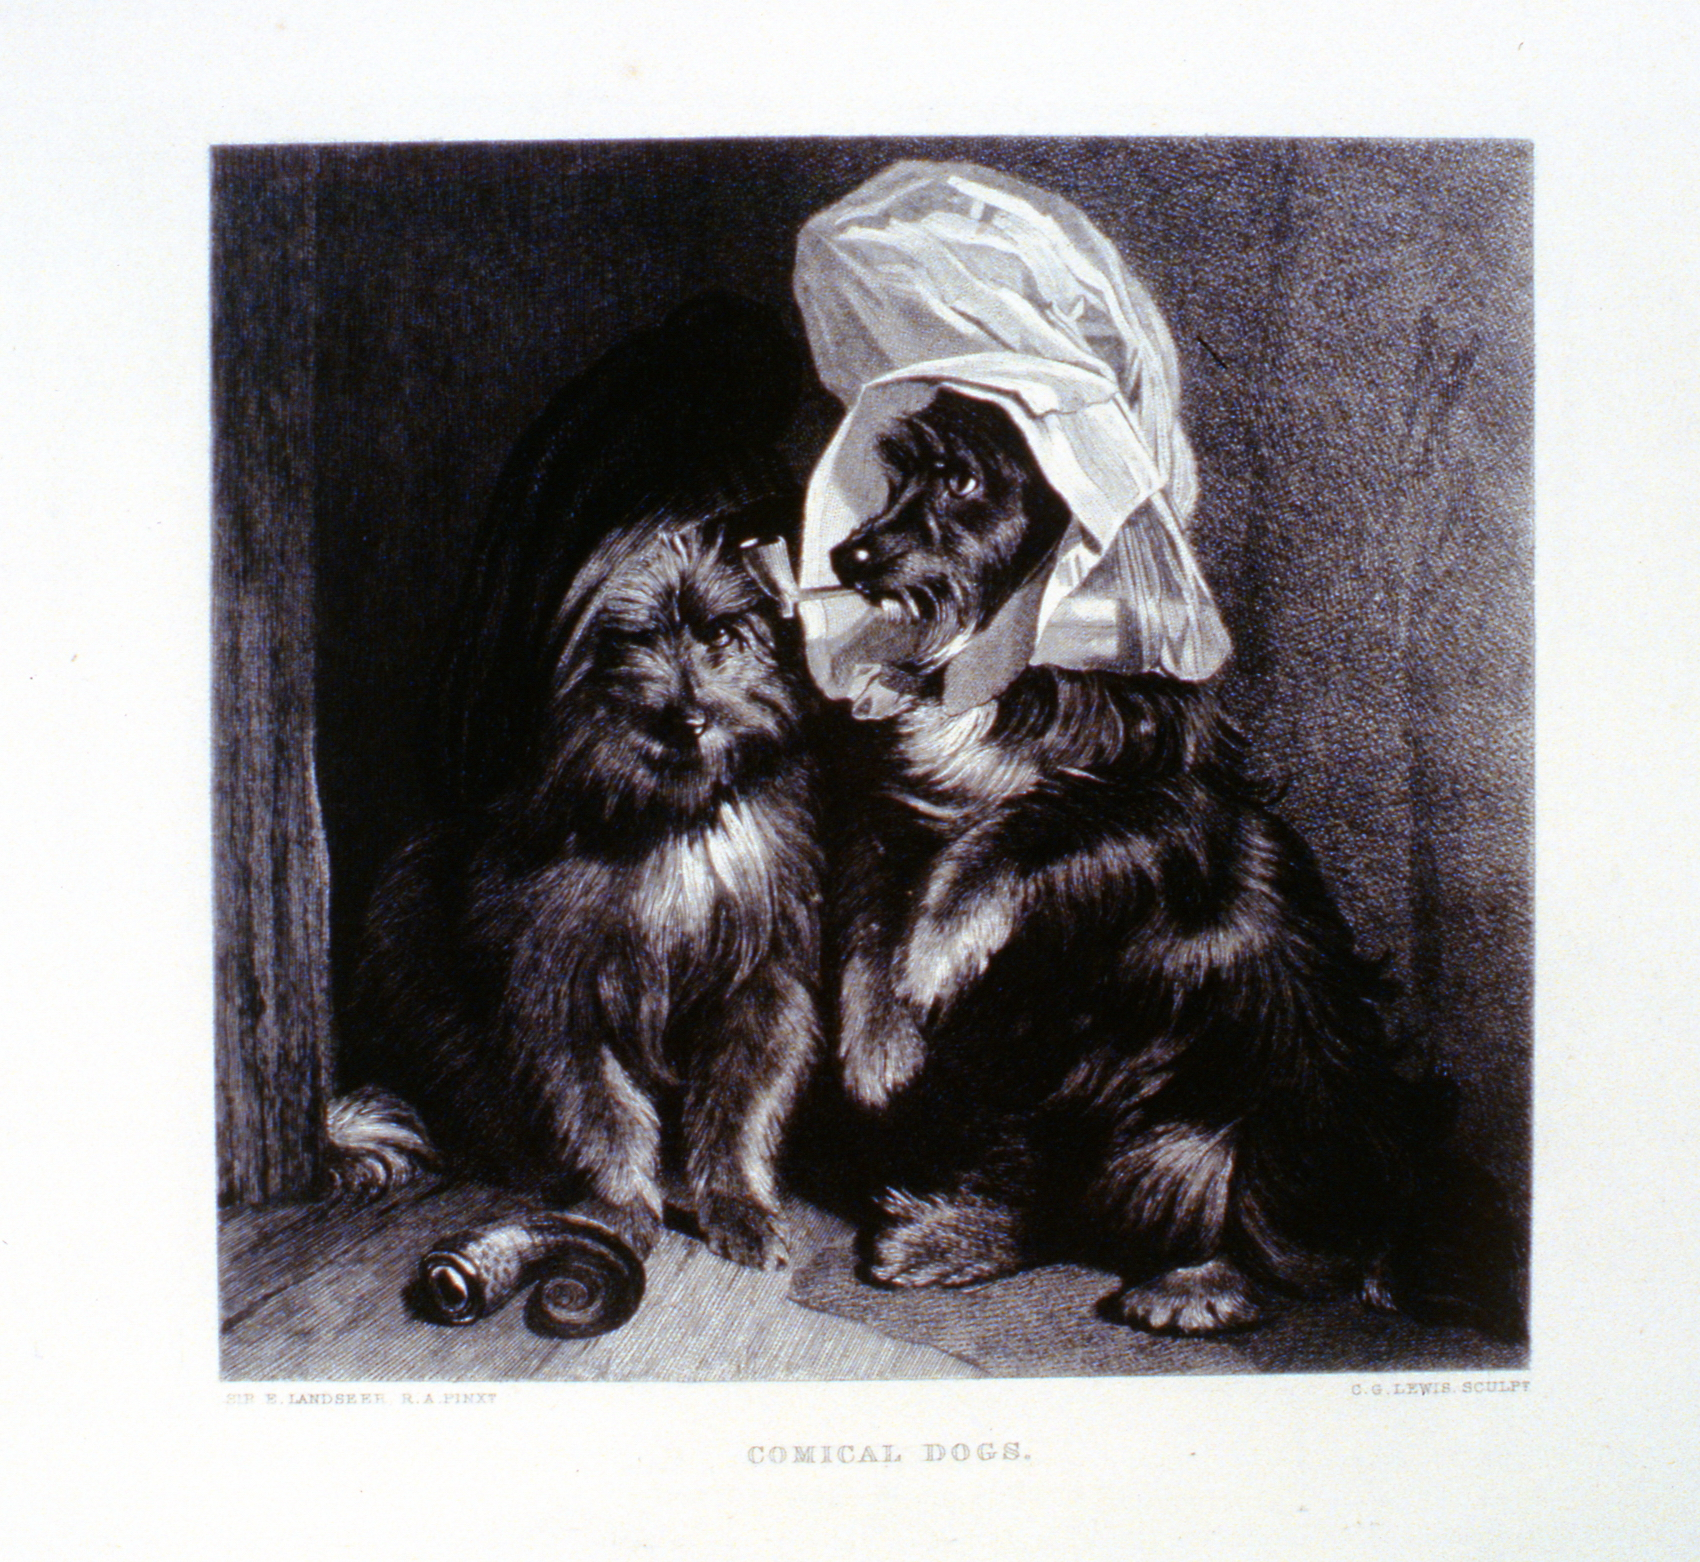 Comical Dogs , c. late 19th Century, Charles G. Lewis, steel engraving, 19.9 cm x 18.6 cm,1996.08.37, gift of Yvonne Adams